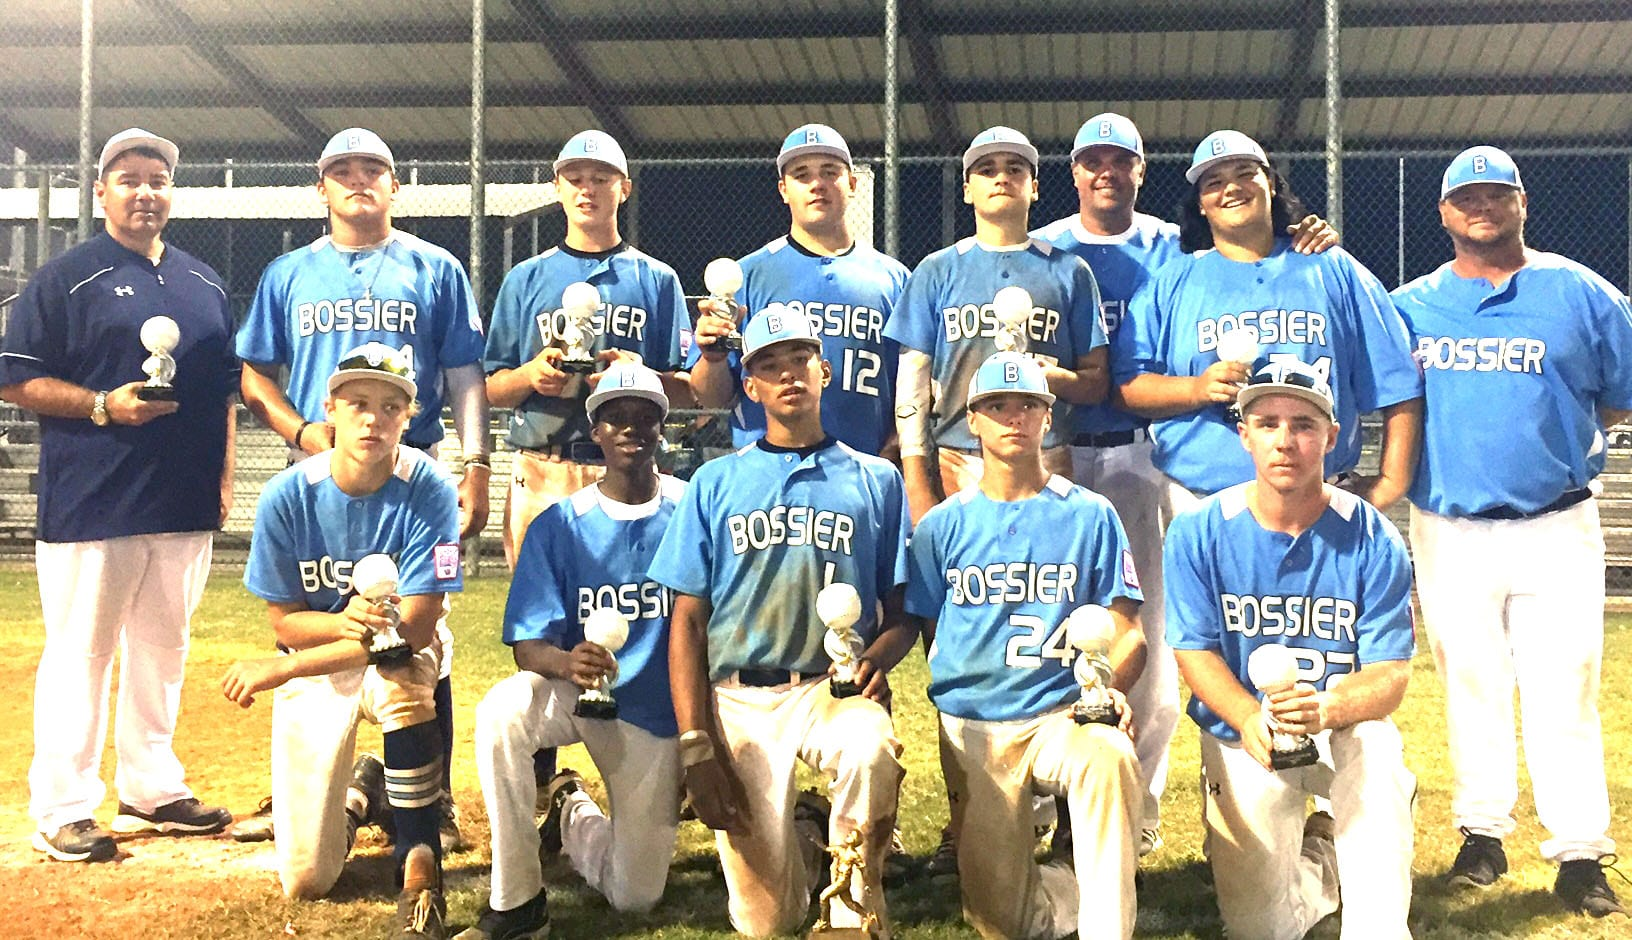 Courtesy Photos The Bossier All-Stars won the Dixie Boys (14s) state championship in Pineville on Wednesday. Here they are after winning the state championship at Walbrook Park last month.